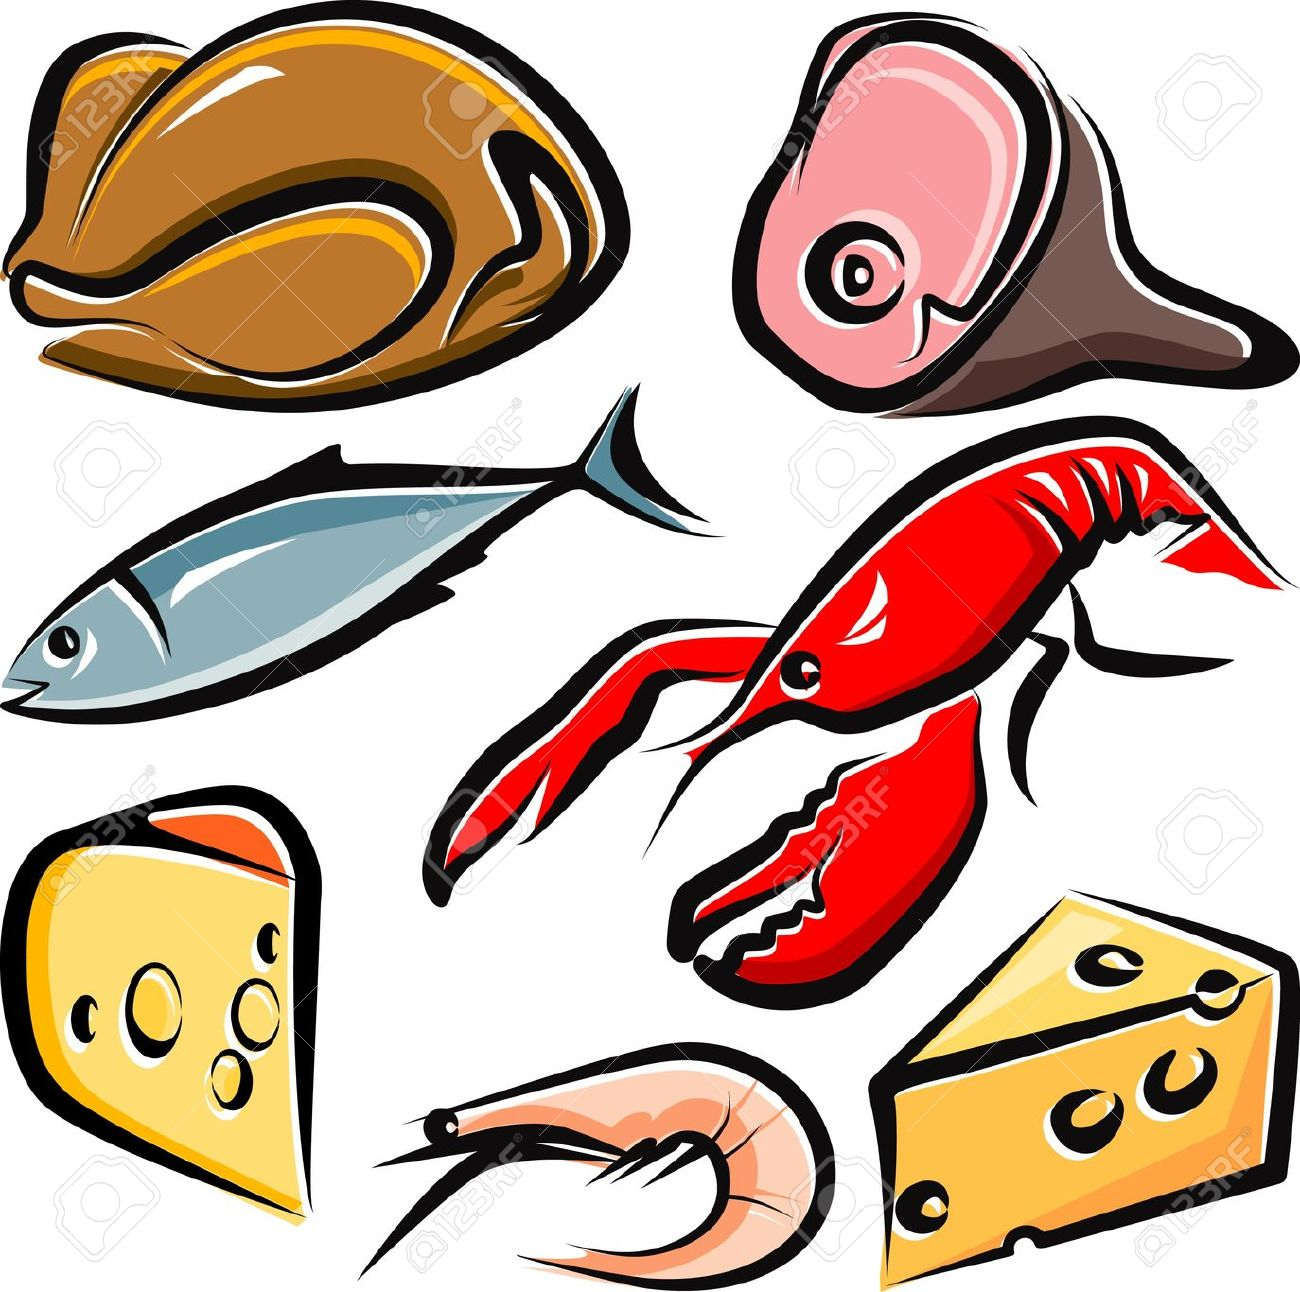 Meat and fish clipart.